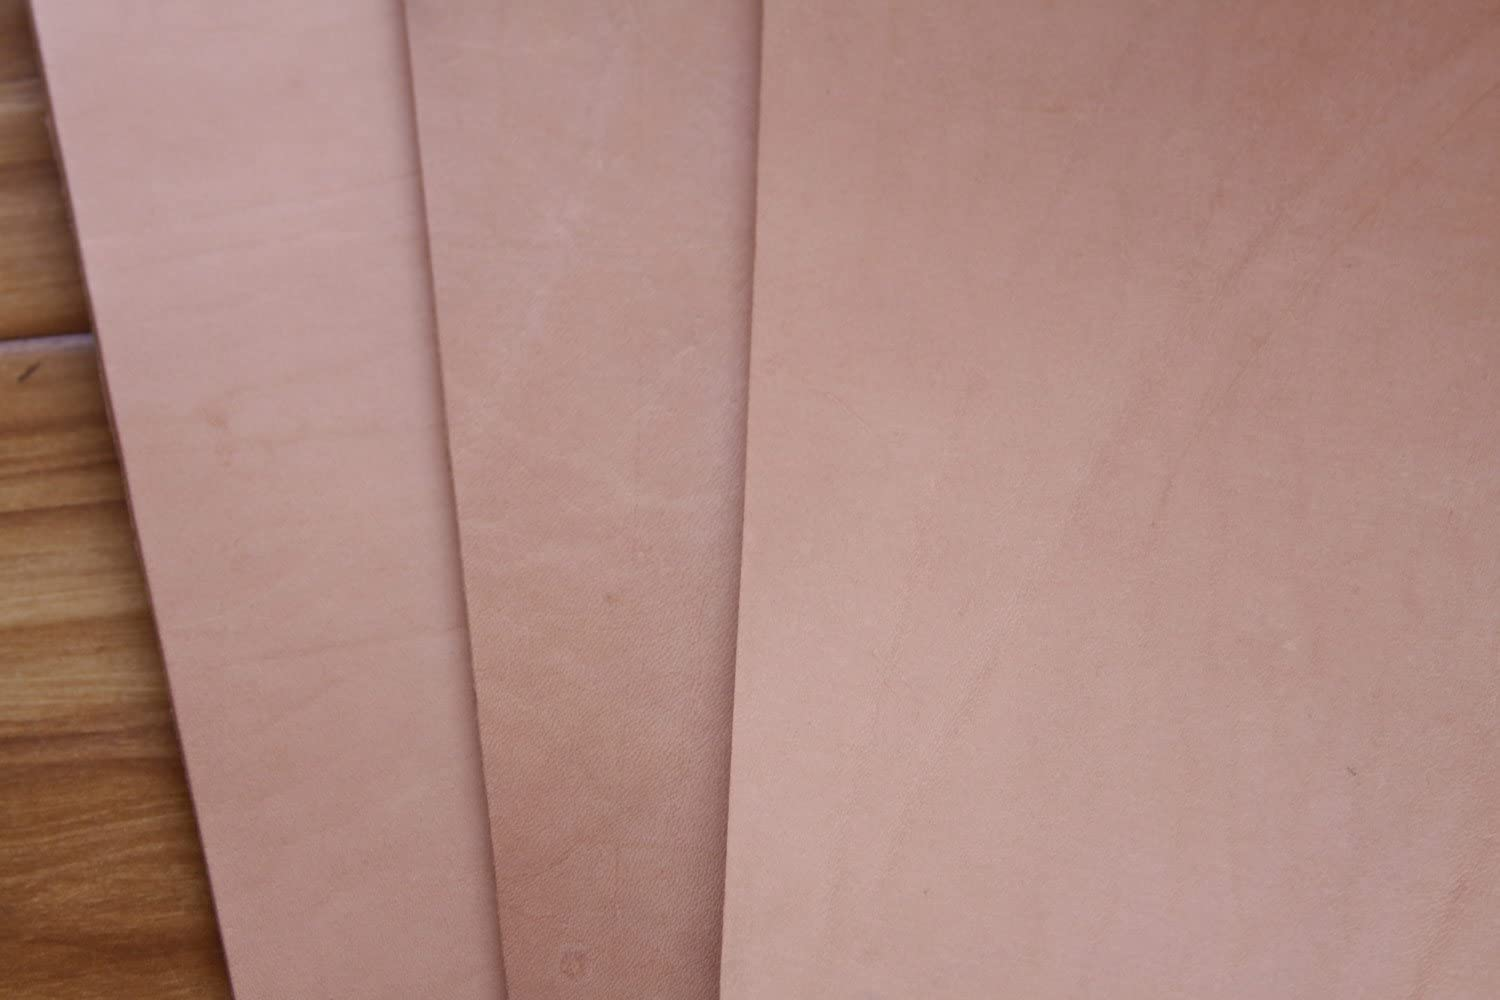 Molding and Hand Crafts 8//10 oz Veg-Tanned Natural Leather for Tooling Carving